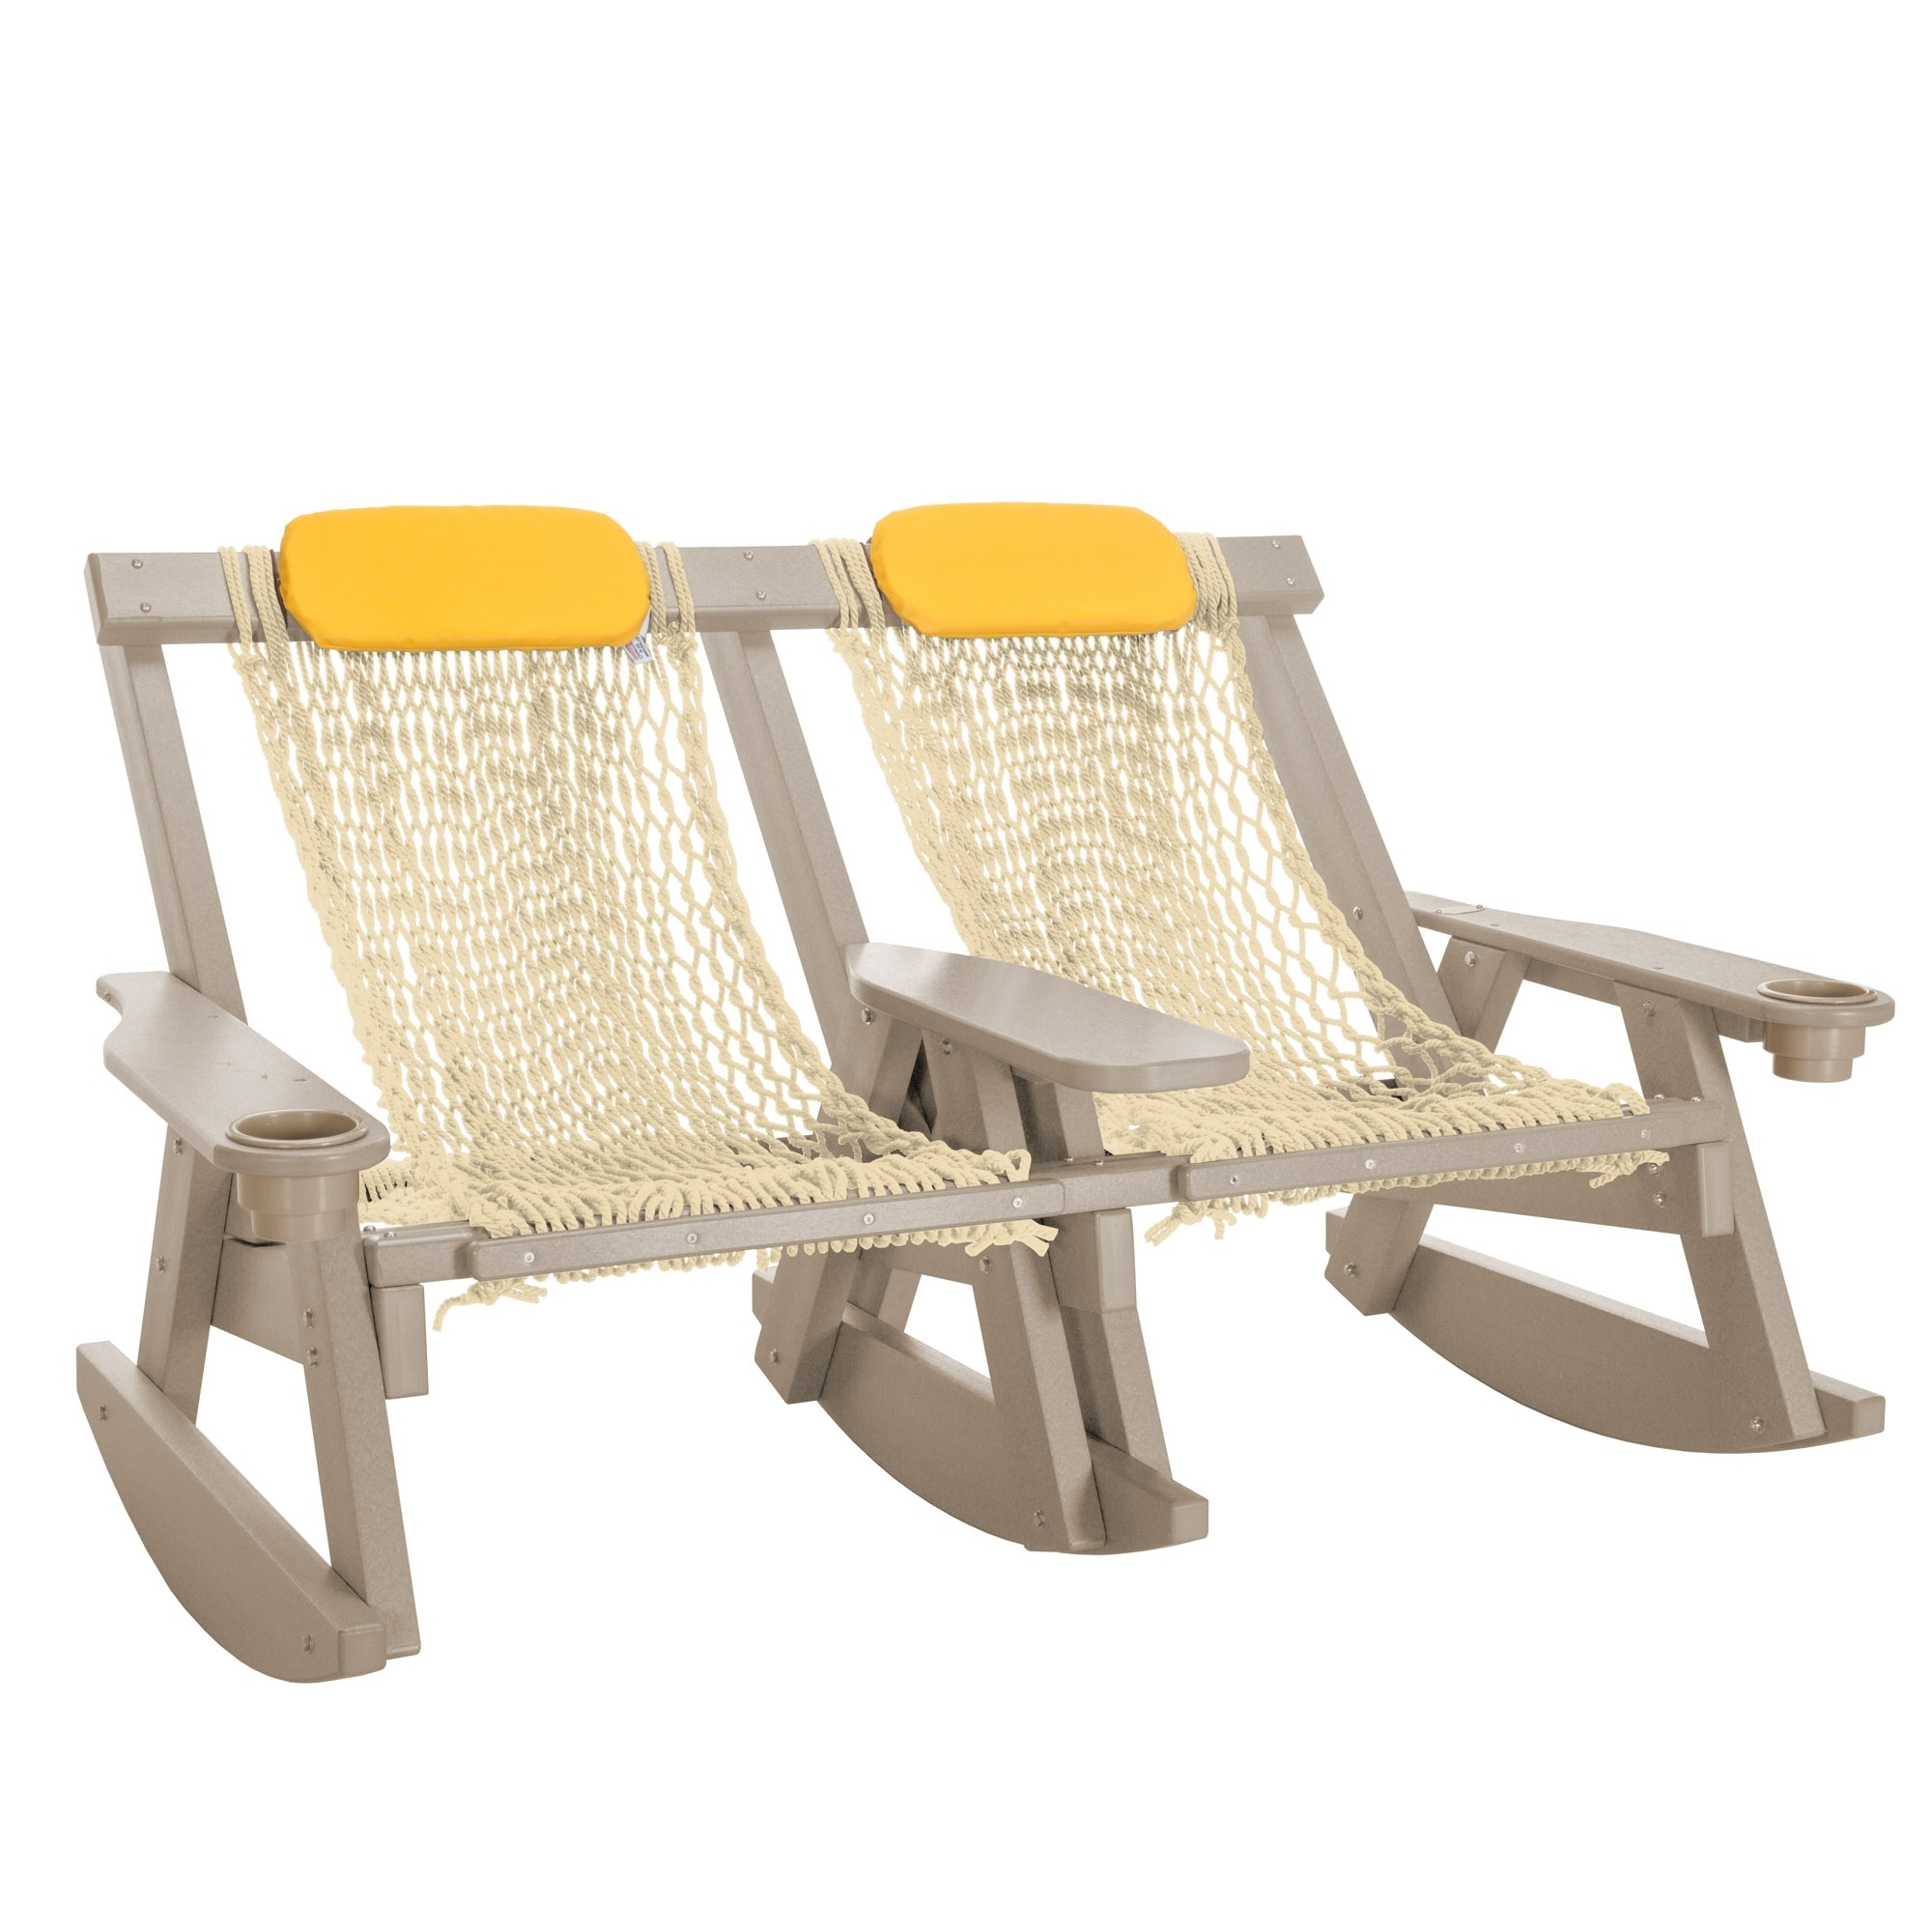 Nags Head Hammocks Durawood Rocking Chairs Weatherwood Double With Famous Yellow Outdoor Rocking Chairs (Gallery 20 of 20)